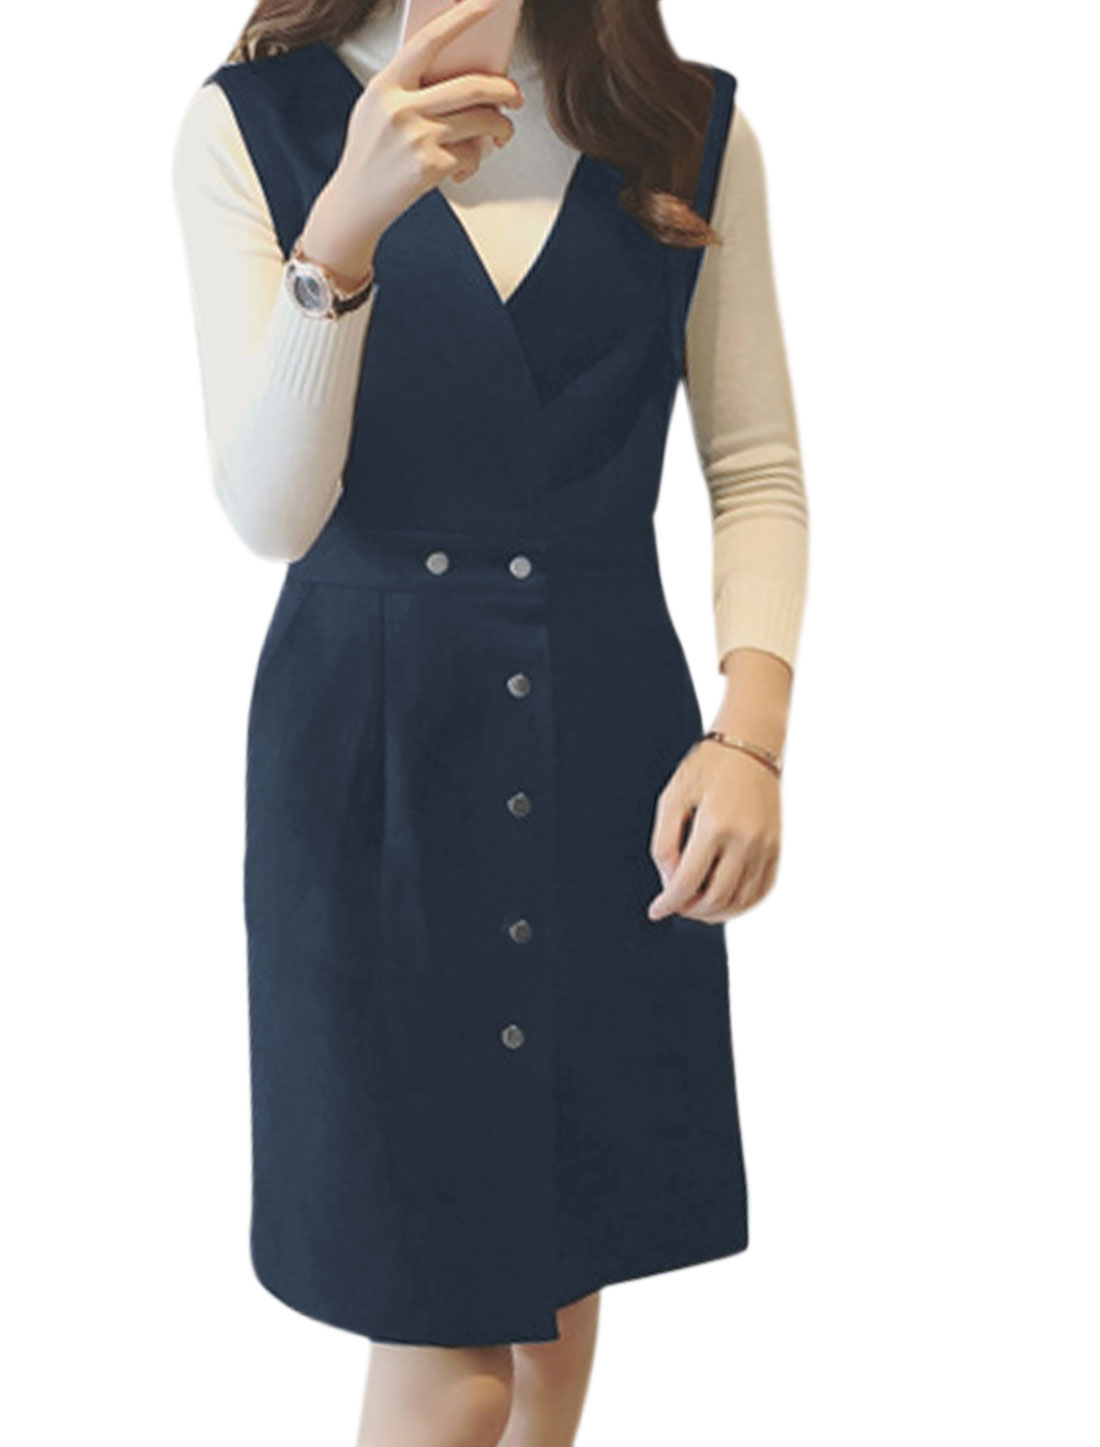 Women Sleeveless Button Closure Slim Fit Wortsed Suspender Skirt Blue M